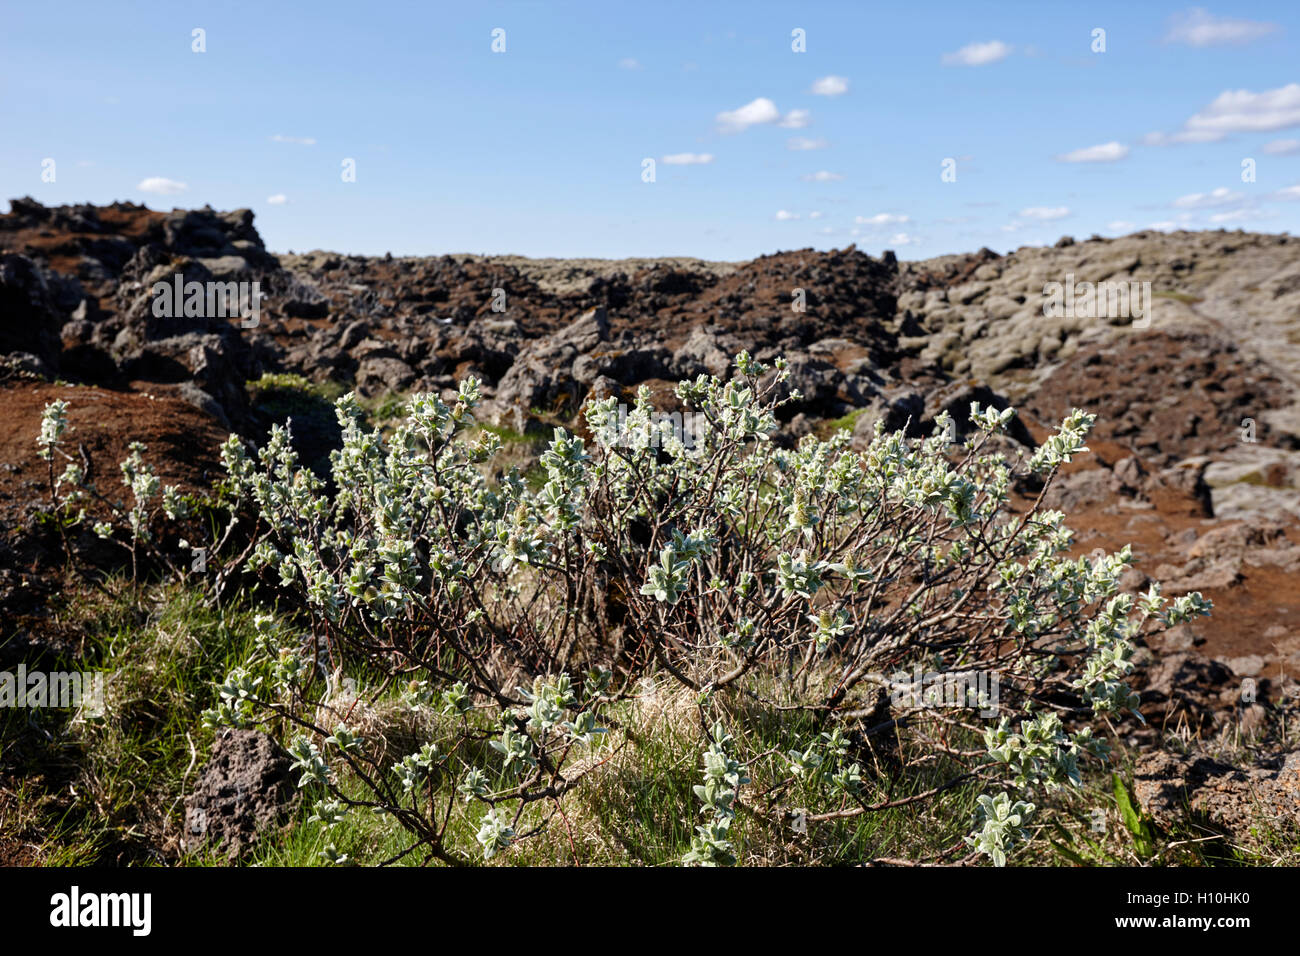 scrub and moss vegetation in lava fields of southern Iceland - Stock Image